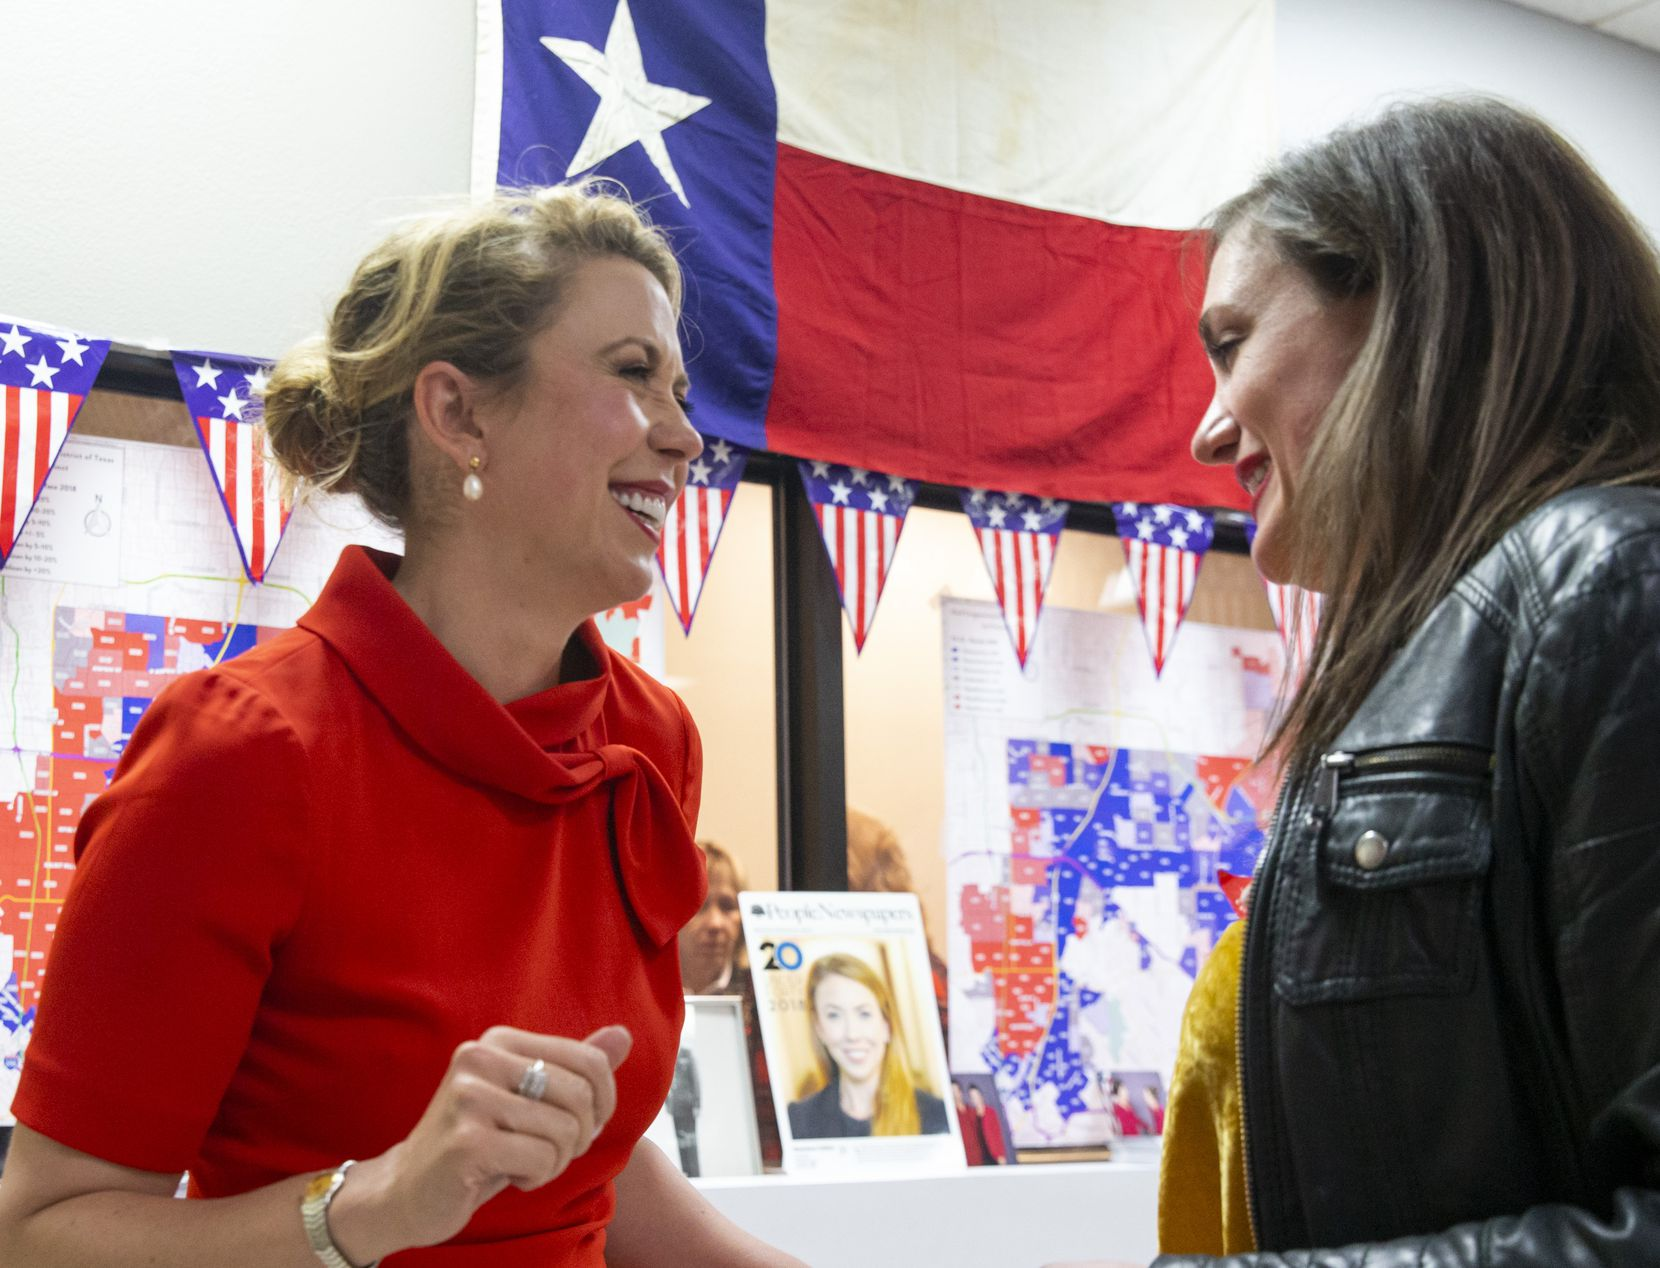 32nd Congressional District candidate Genevieve Collins (left) celebrated with her best friend, Allison Richie, after favorable results were announced during a primary election watch party at Collins' campaign headquarters in Dallas on March 3, 2020.